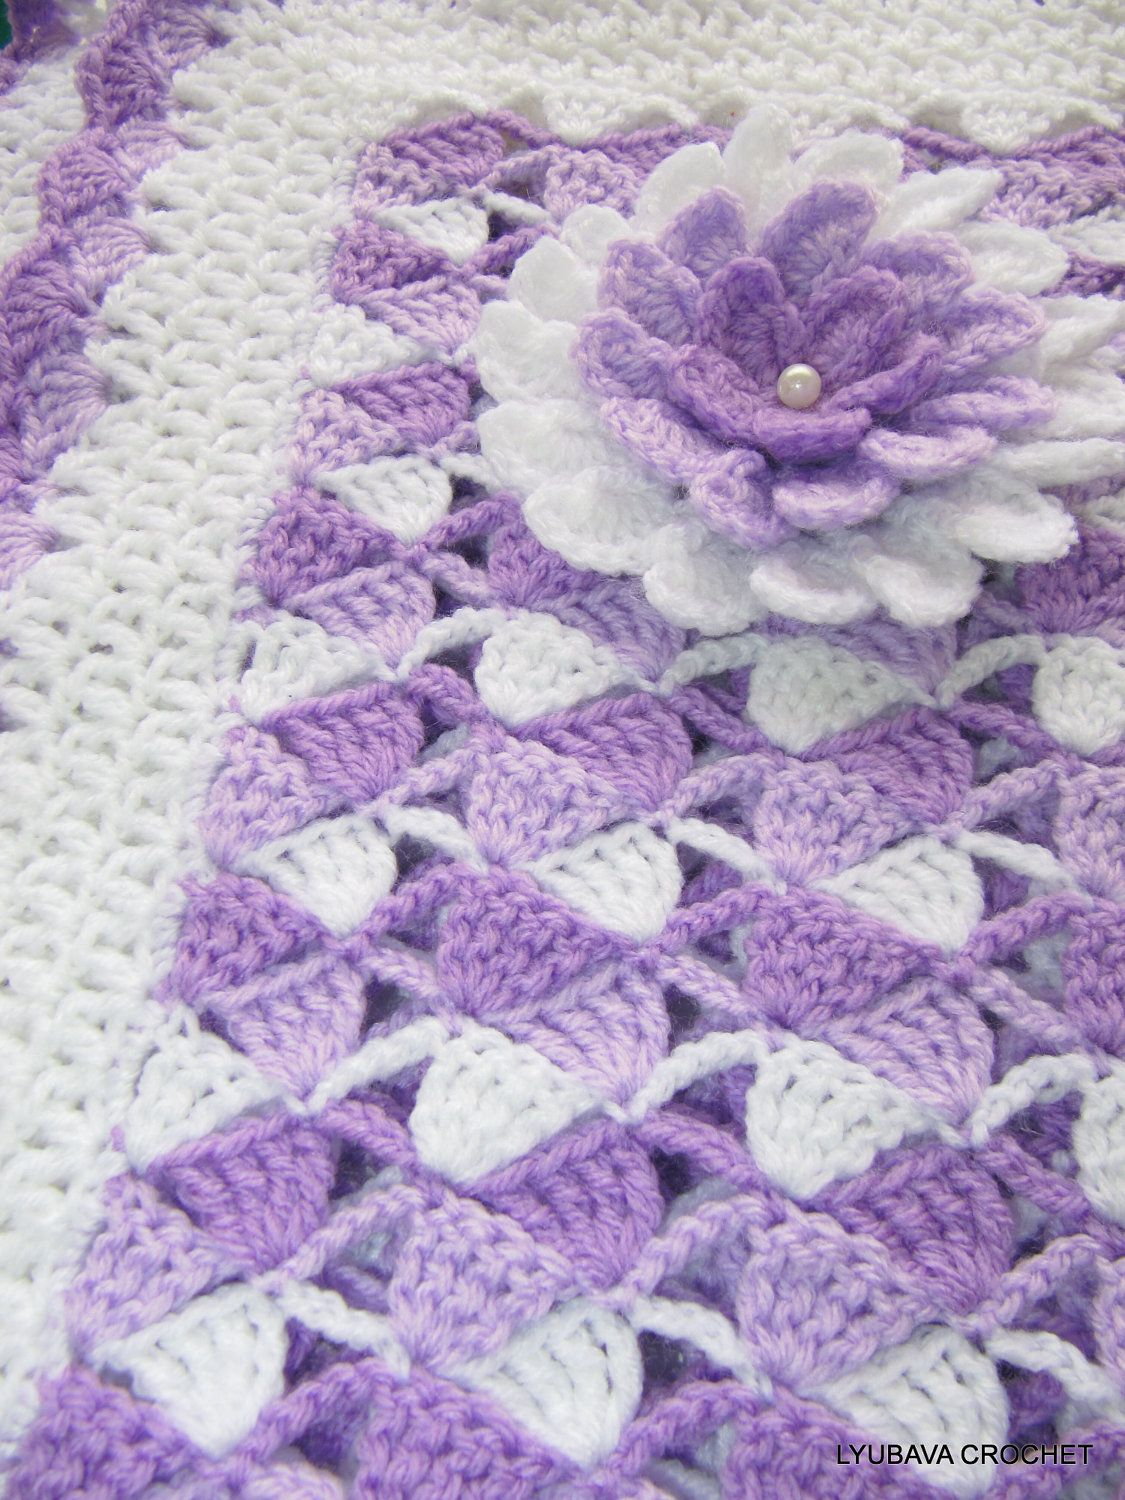 Free crochet patterns baby blankets crochet baby blanket new crochet free crochet patterns baby blankets bankloansurffo Gallery